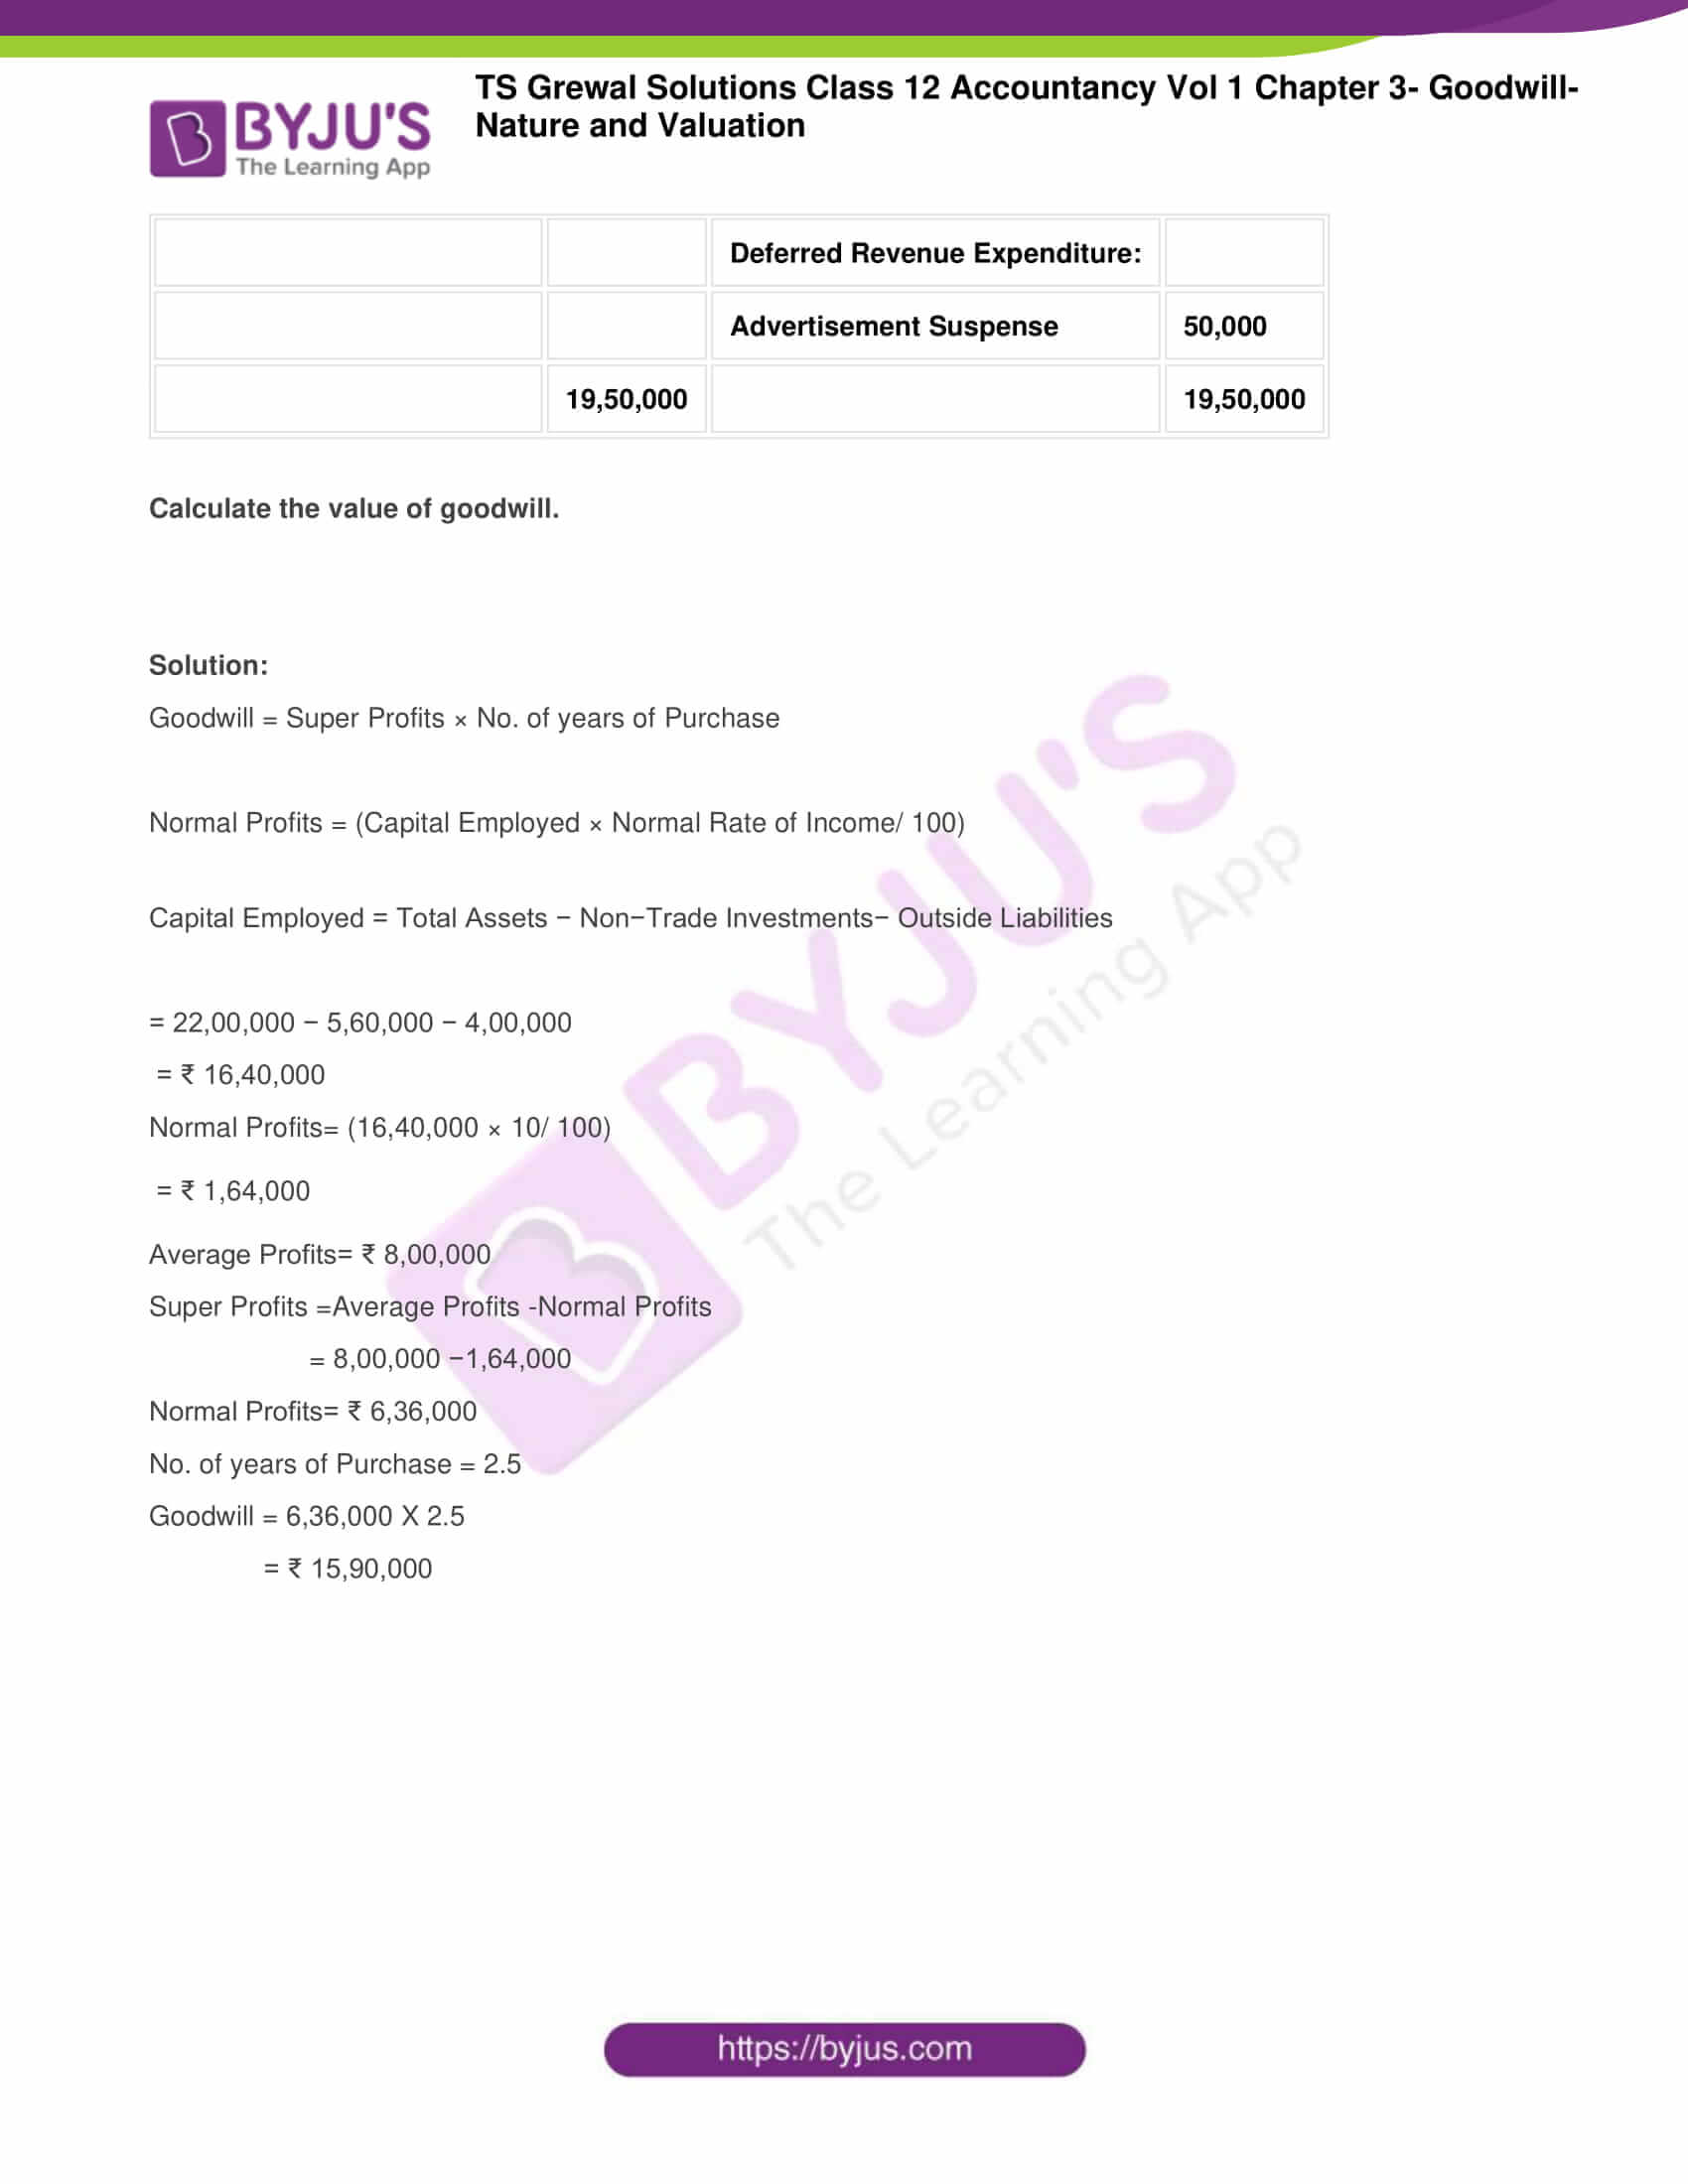 ts grewal solutions for class 12 accountancy vol 1 chapter 328